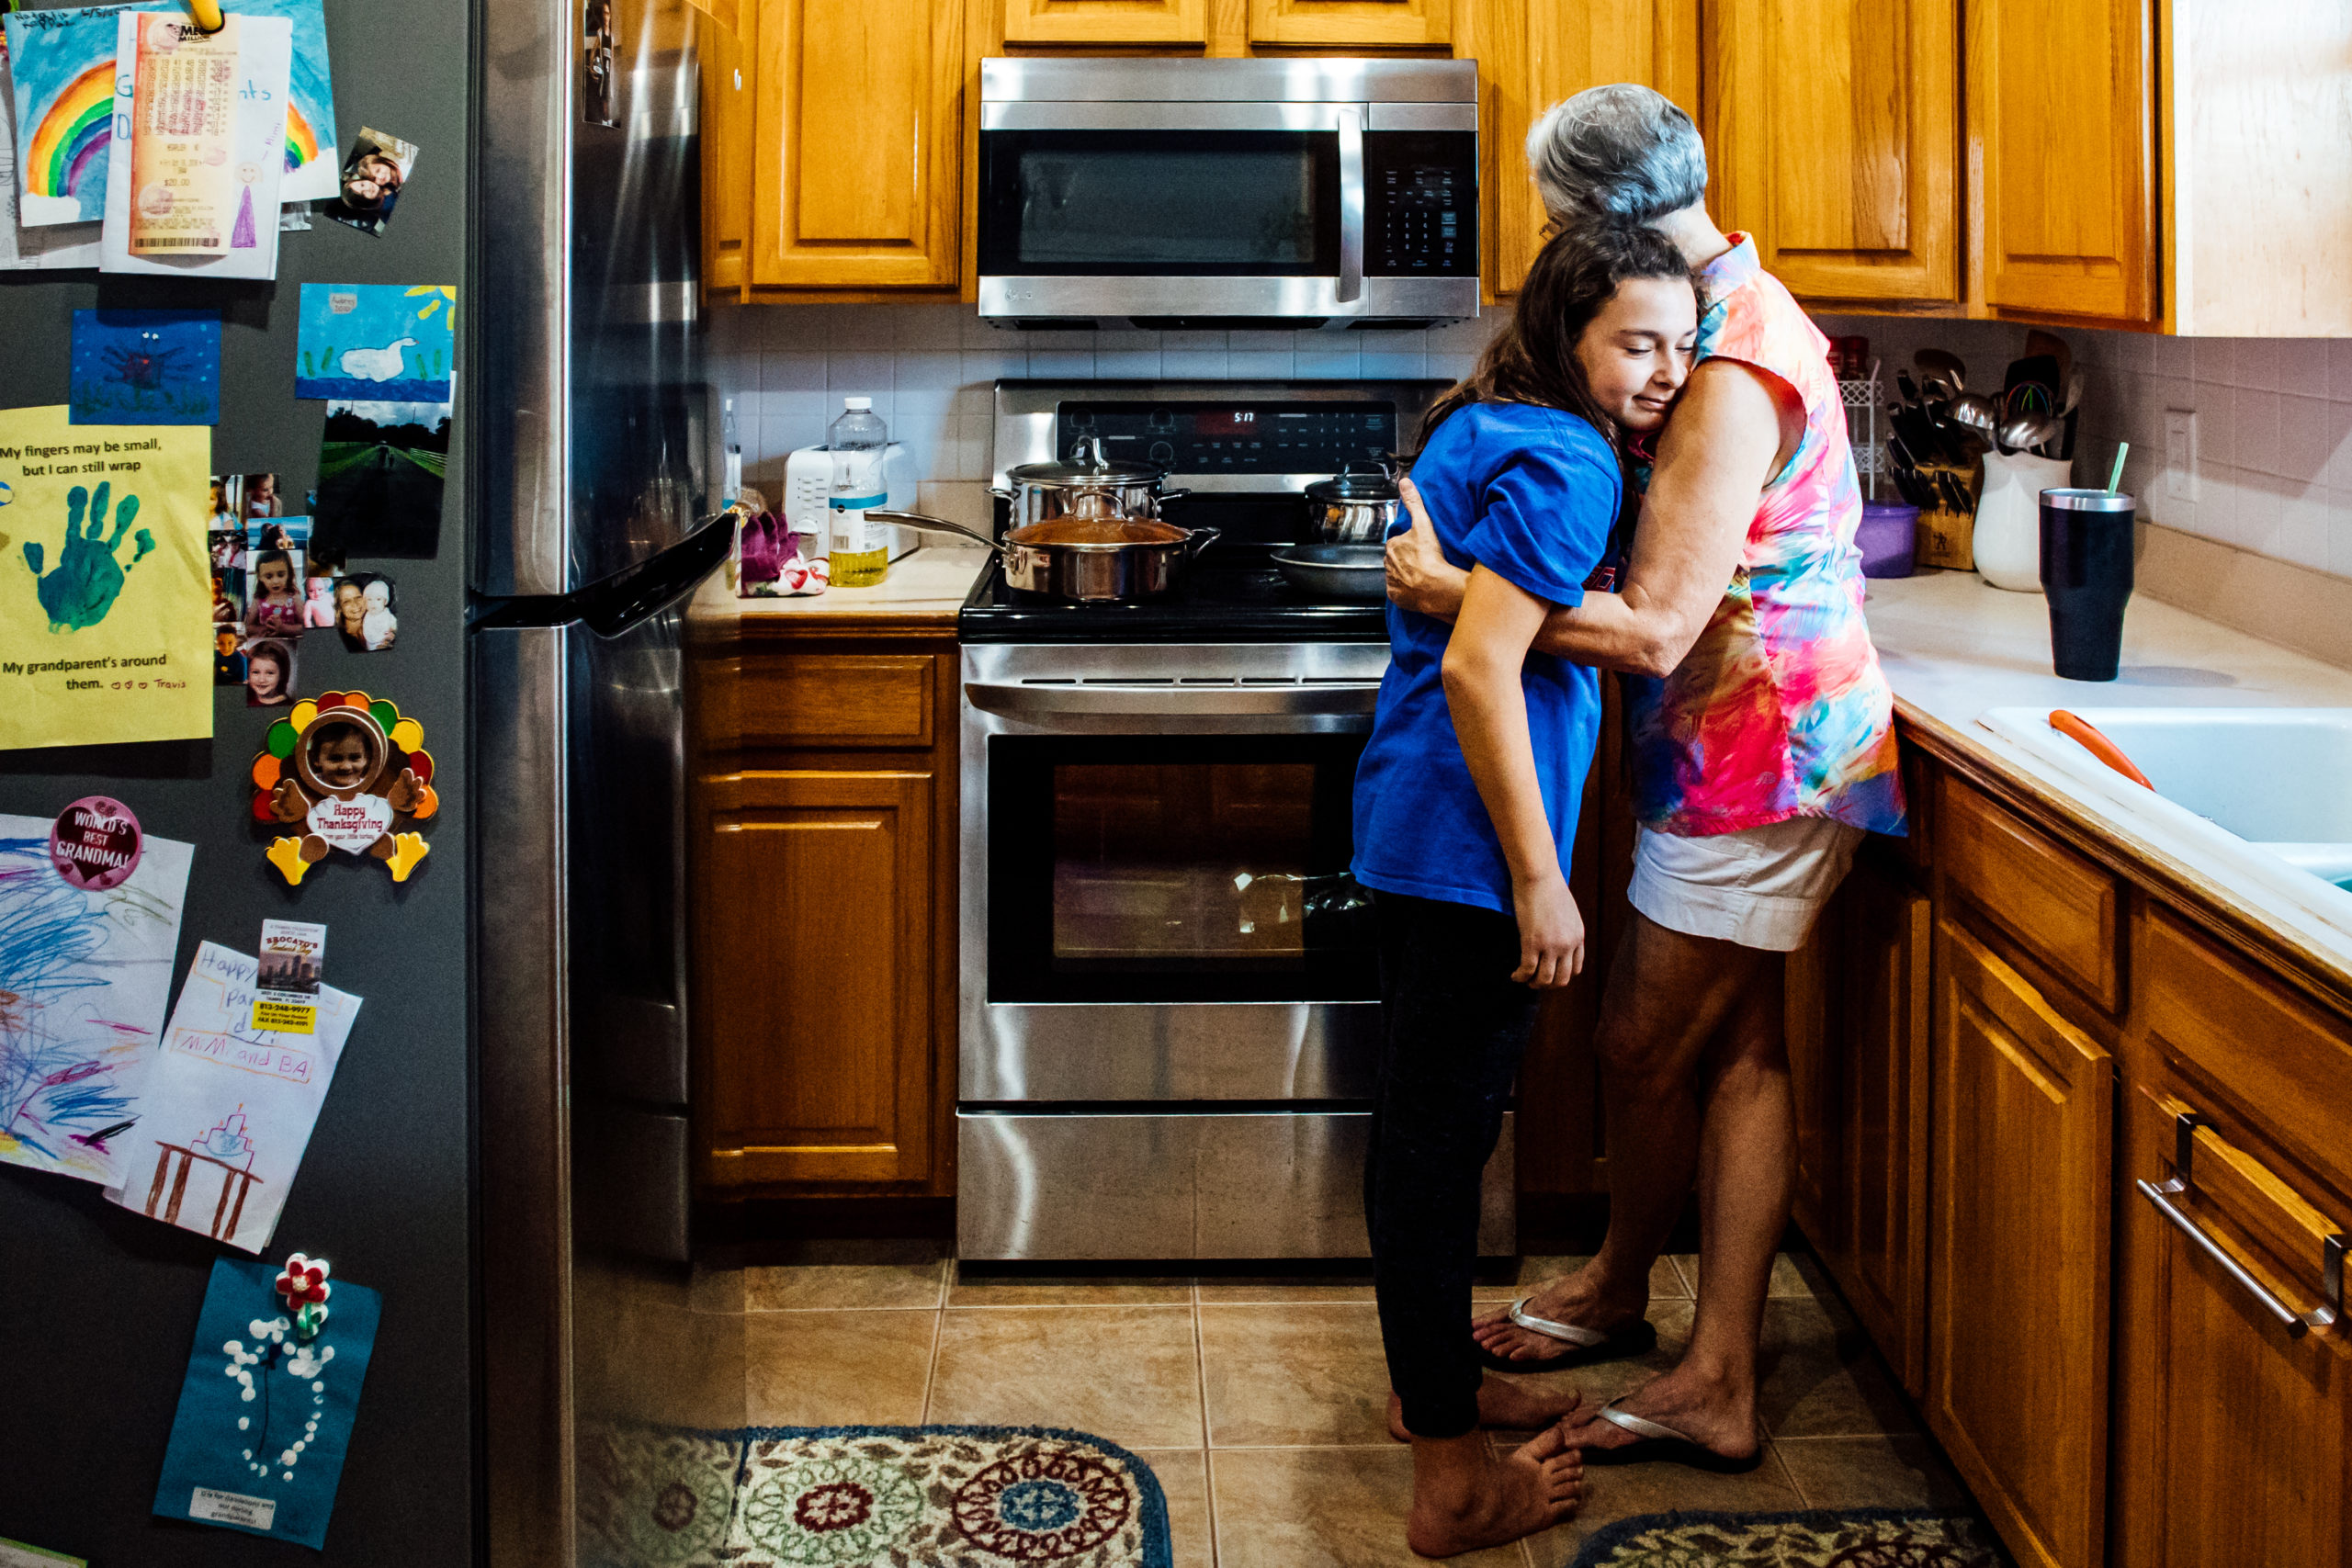 Grandmother and Granddaughter hugging in kitchen